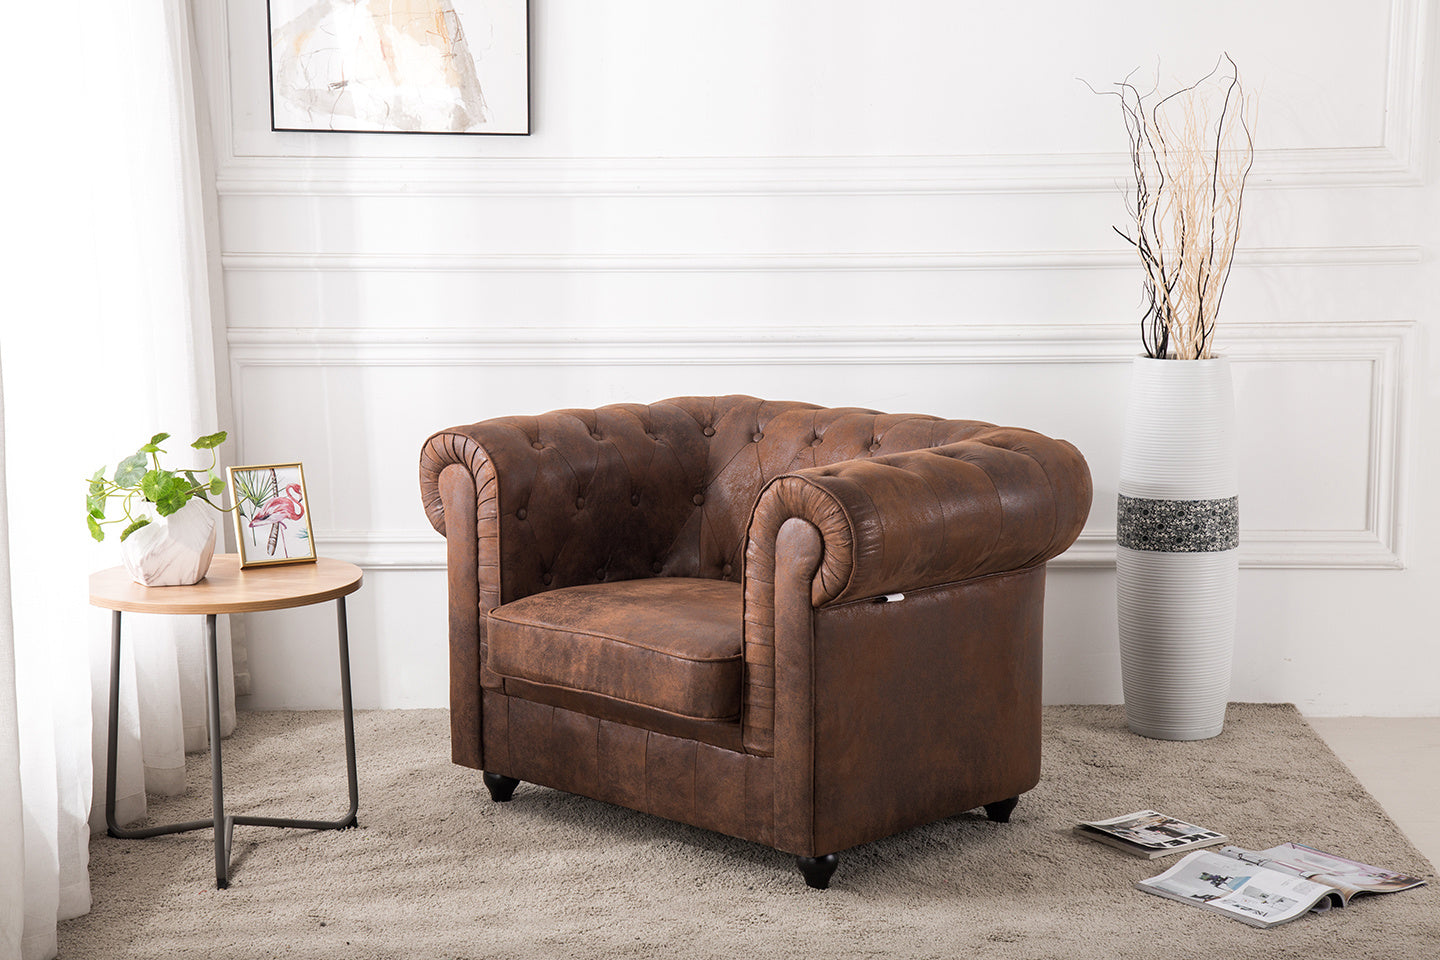 King Armchair in Chesterfield Suede Leather